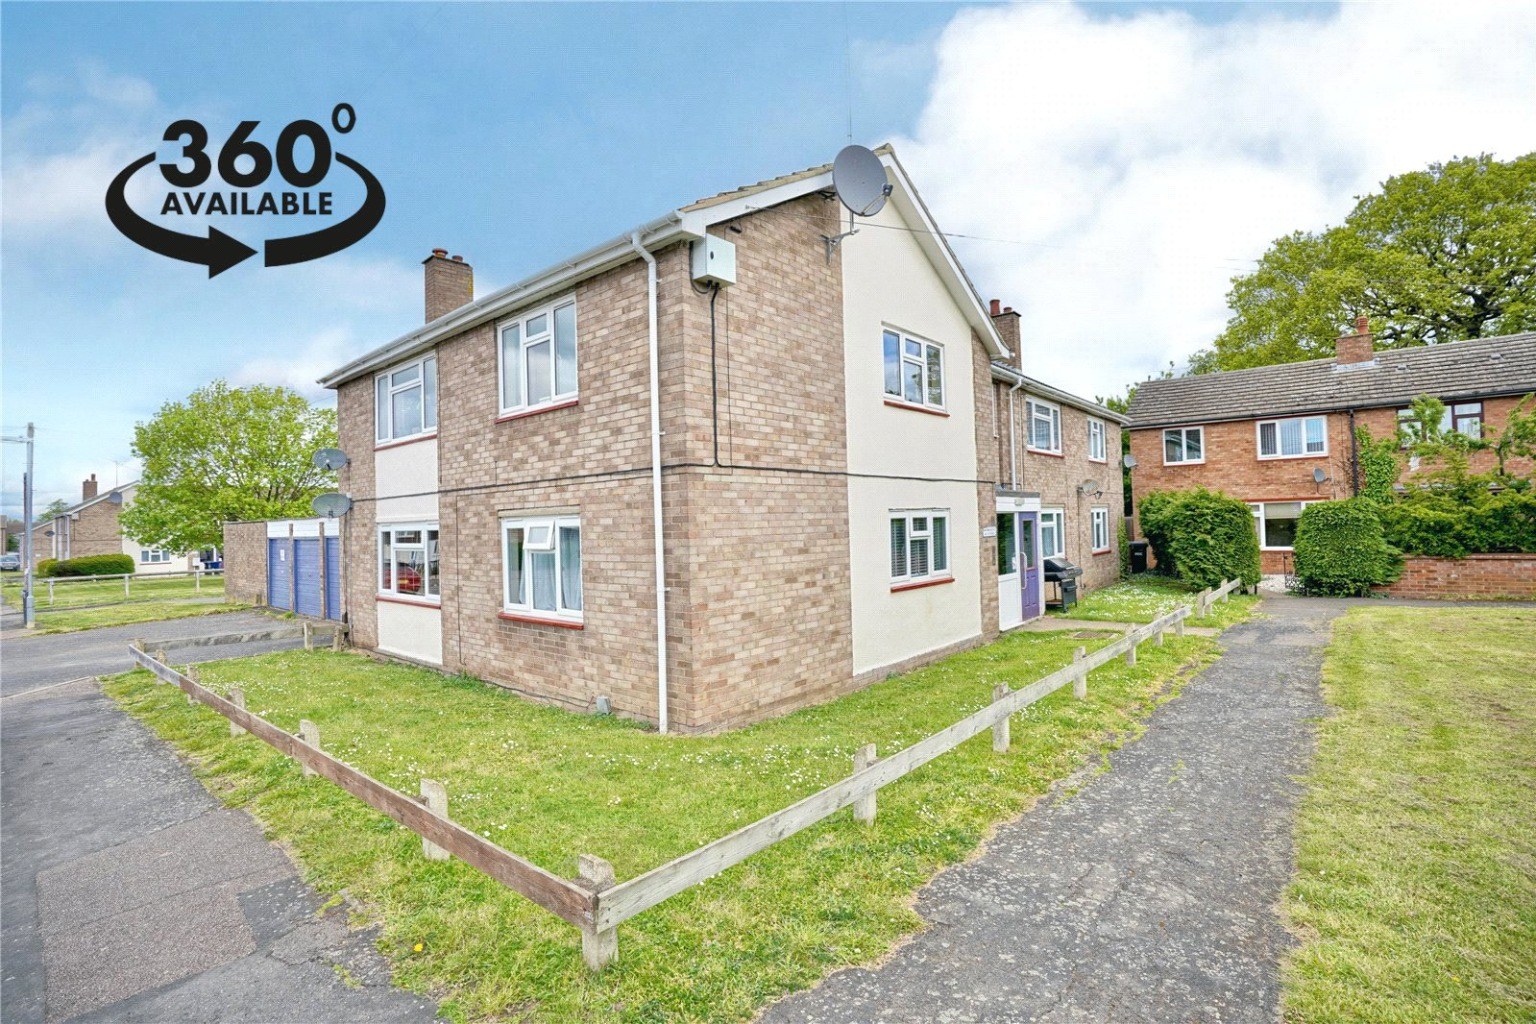 2 bed maisonette for sale in Wintringham Road, St. Neots - Property Image 1